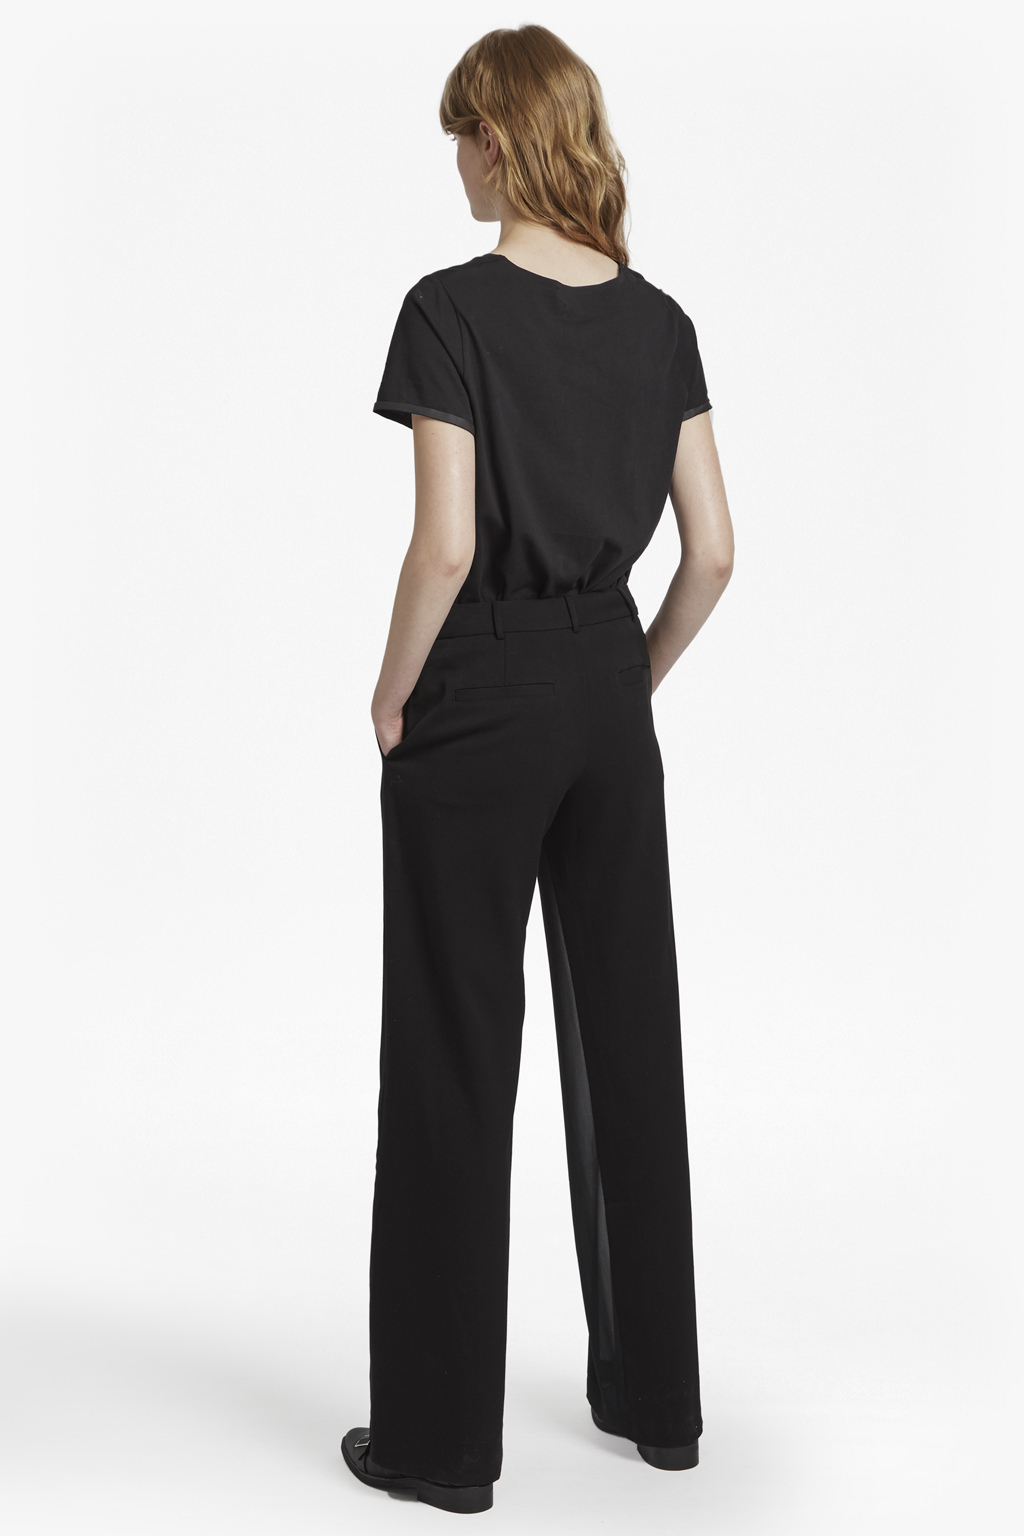 French Connection Ines Suiting Trousers Best Place Sale Online Affordable Cheap Price Supply For Sale Prices Sale Online Buy Cheap Fashionable gORjUC